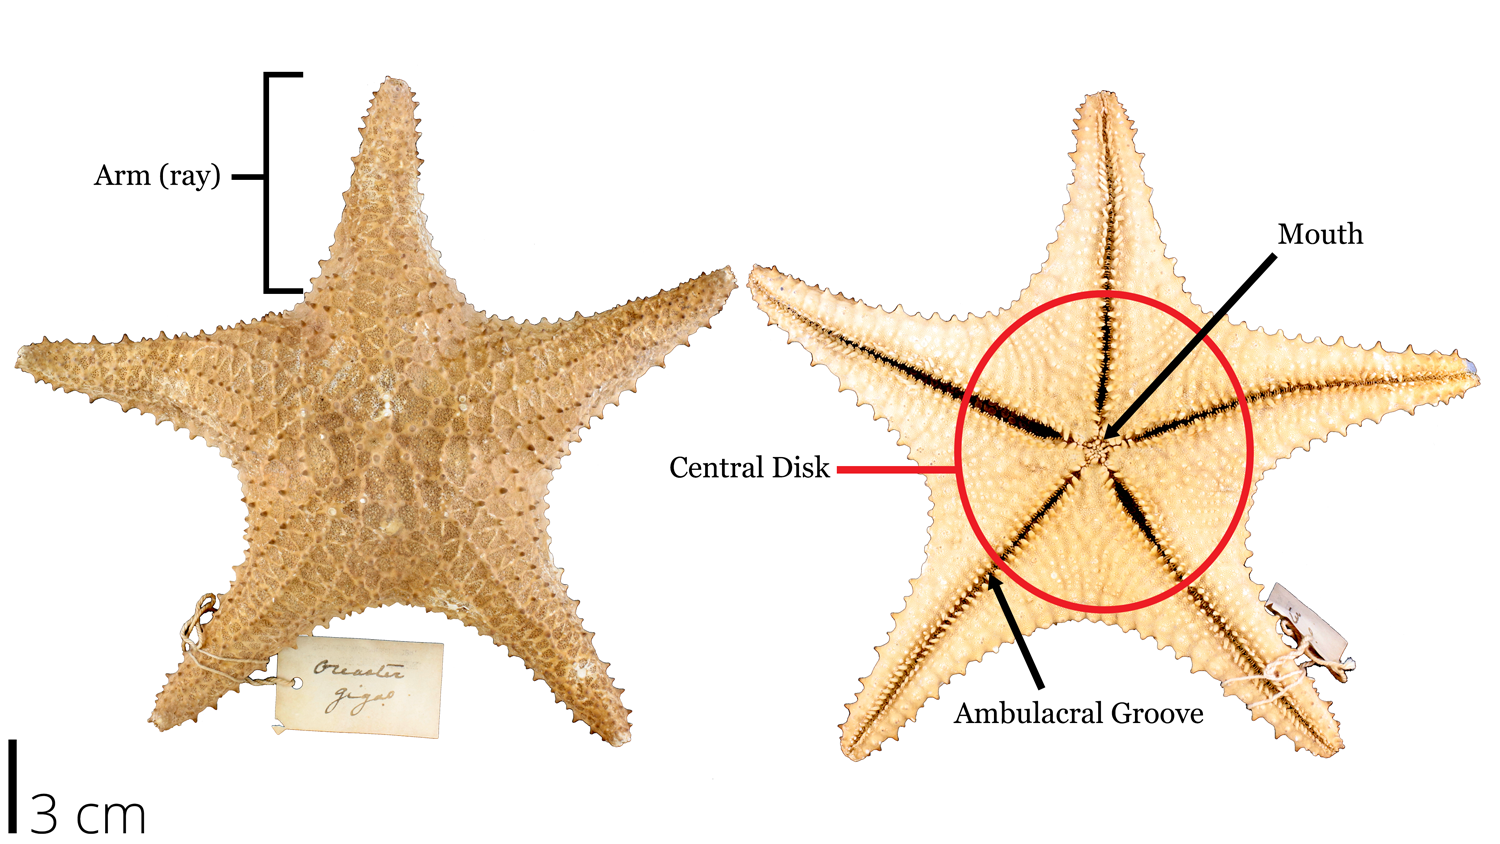 Image of a recent dried out sea star with labelled morphology